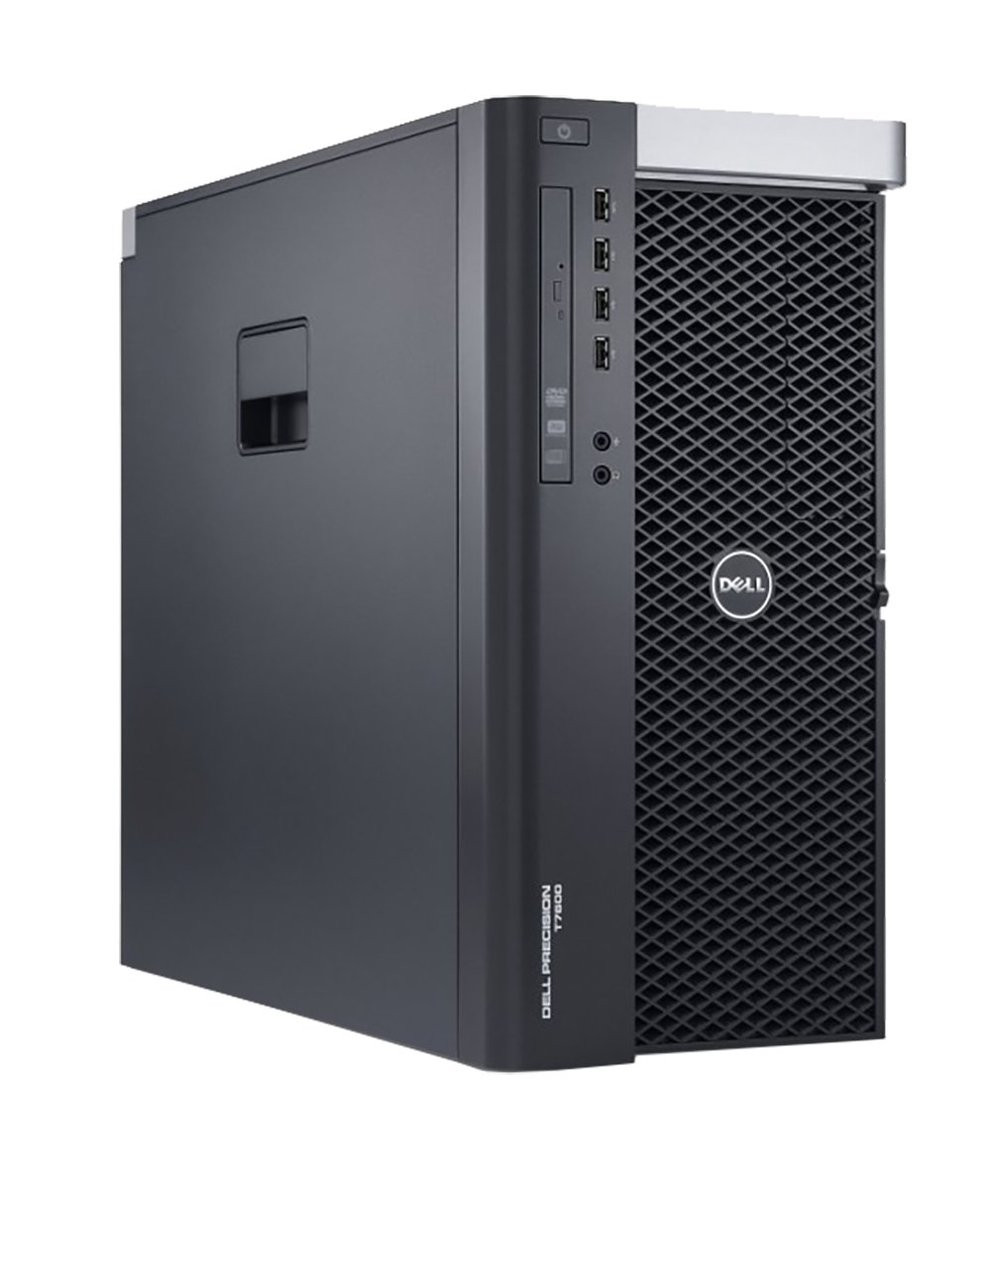 Dell Precision T7600 Tower Six Core Dual Intel Xeon